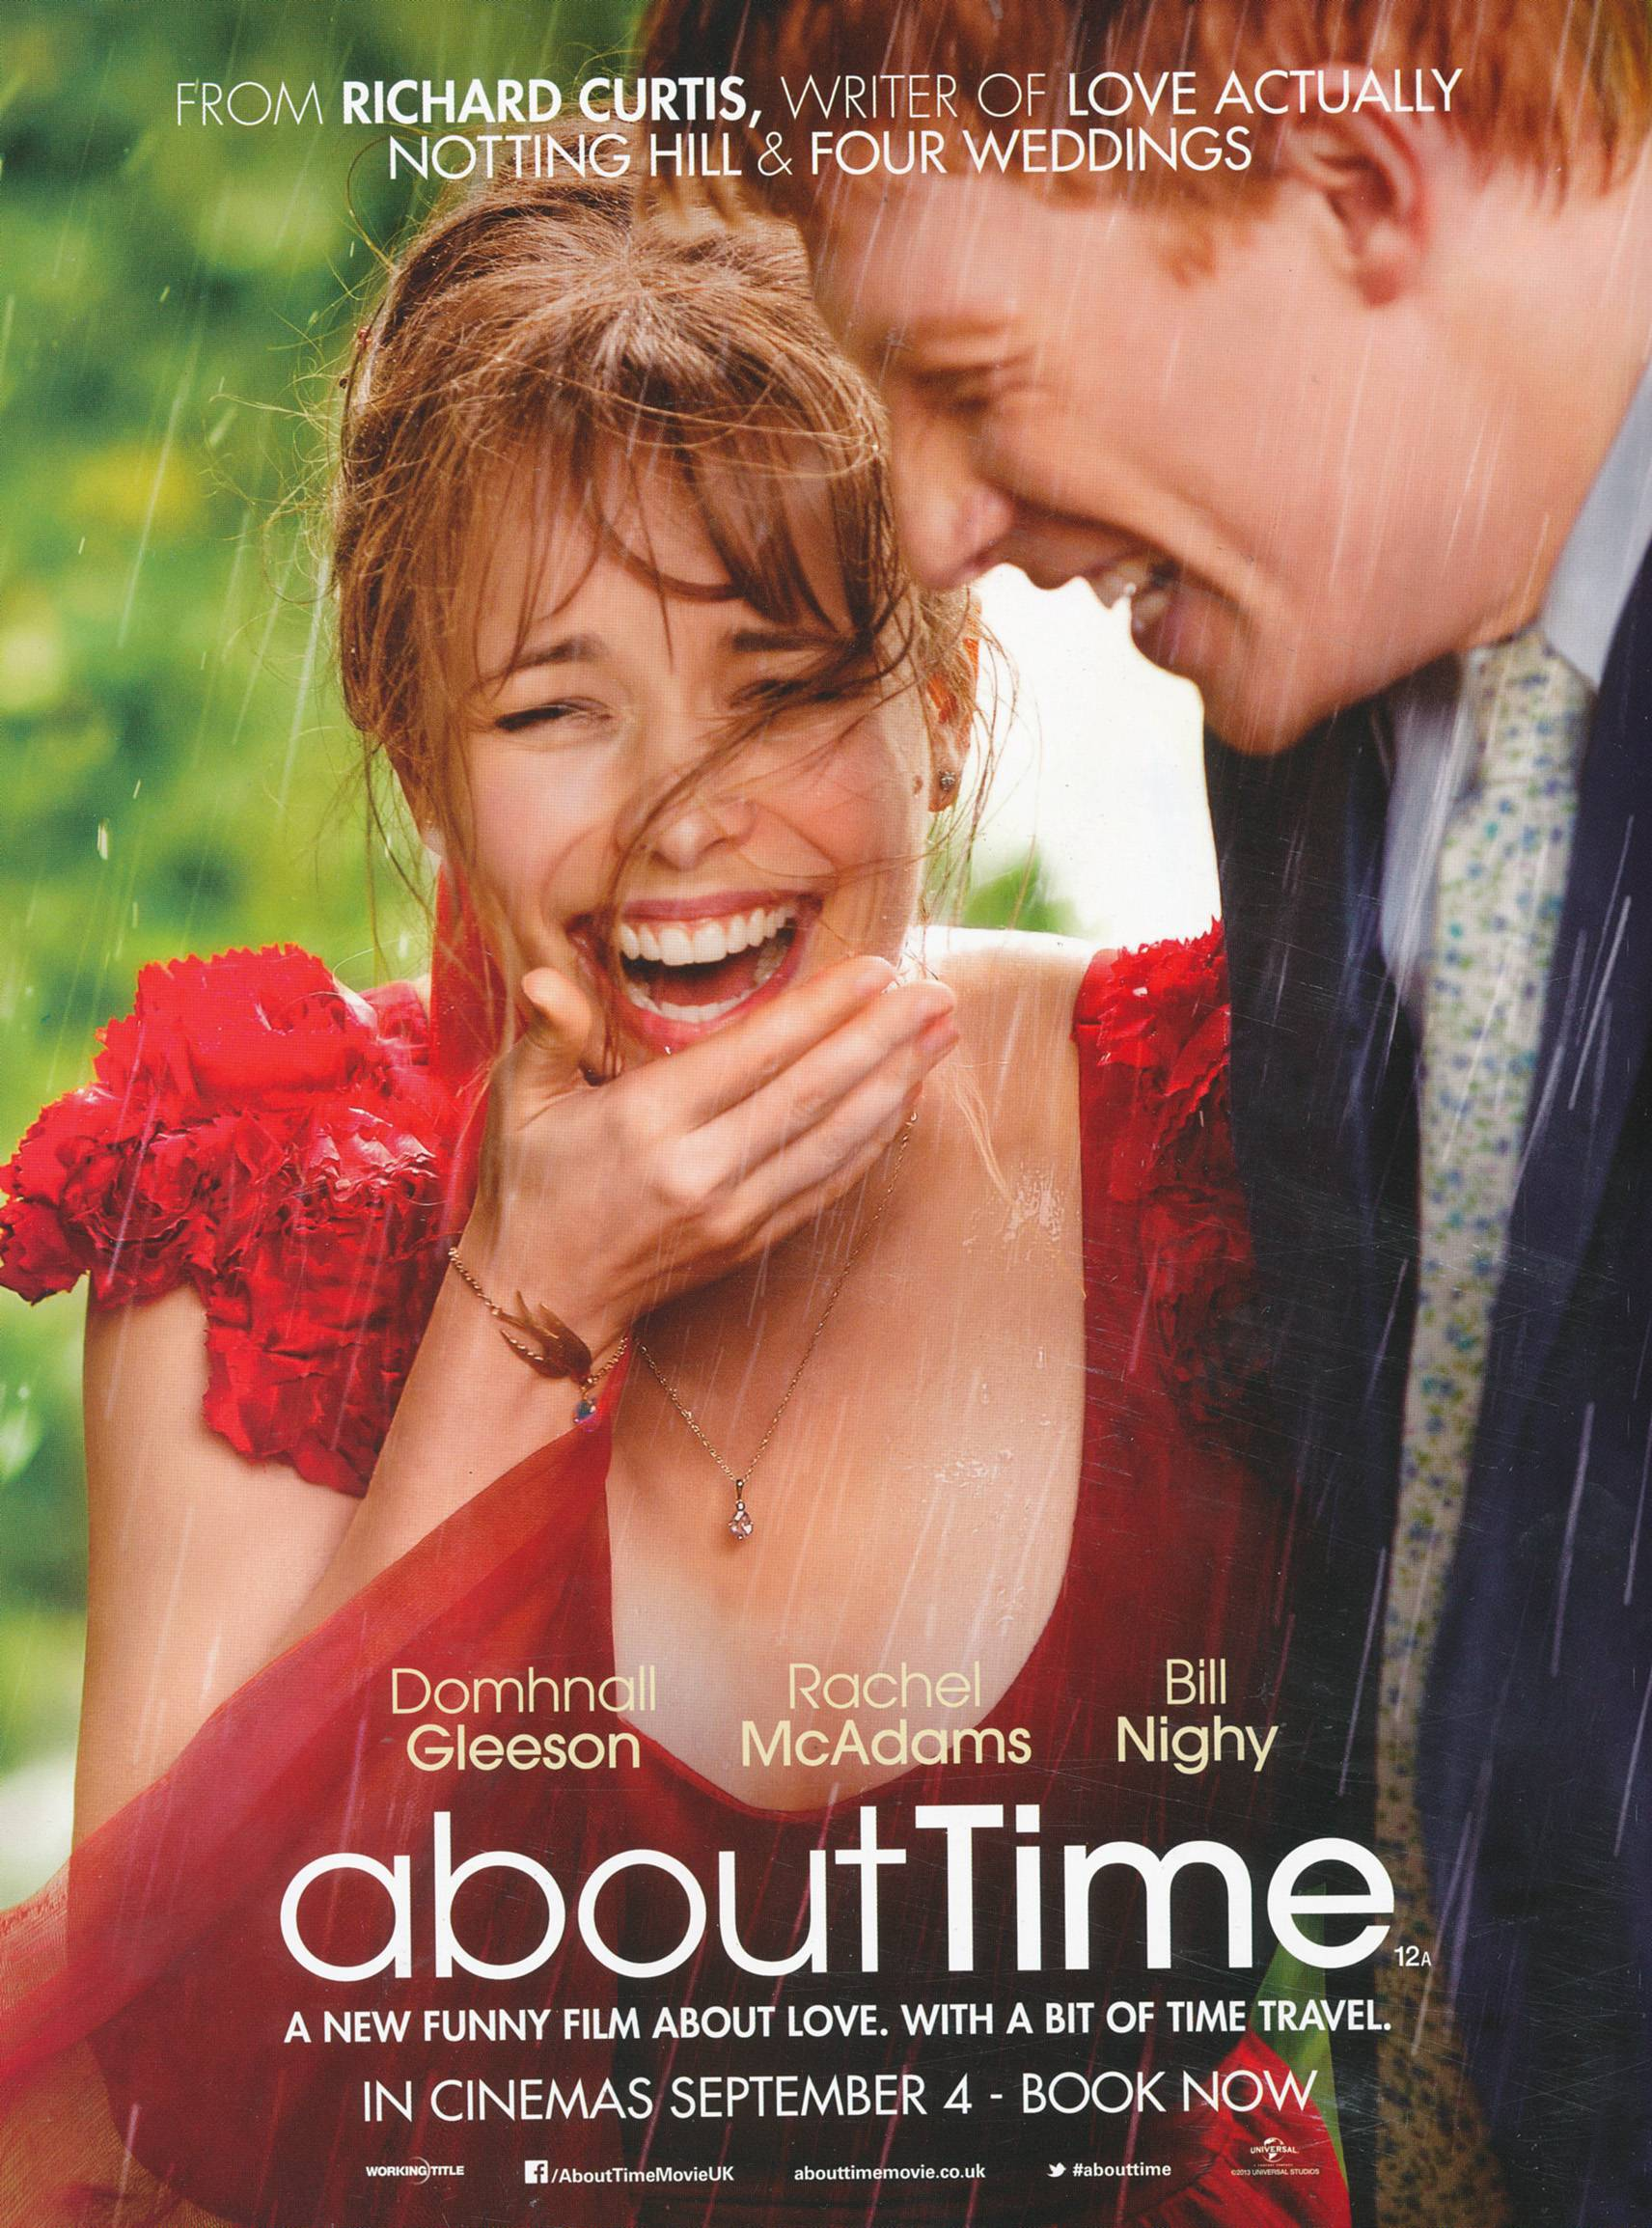 about-time-poster 1